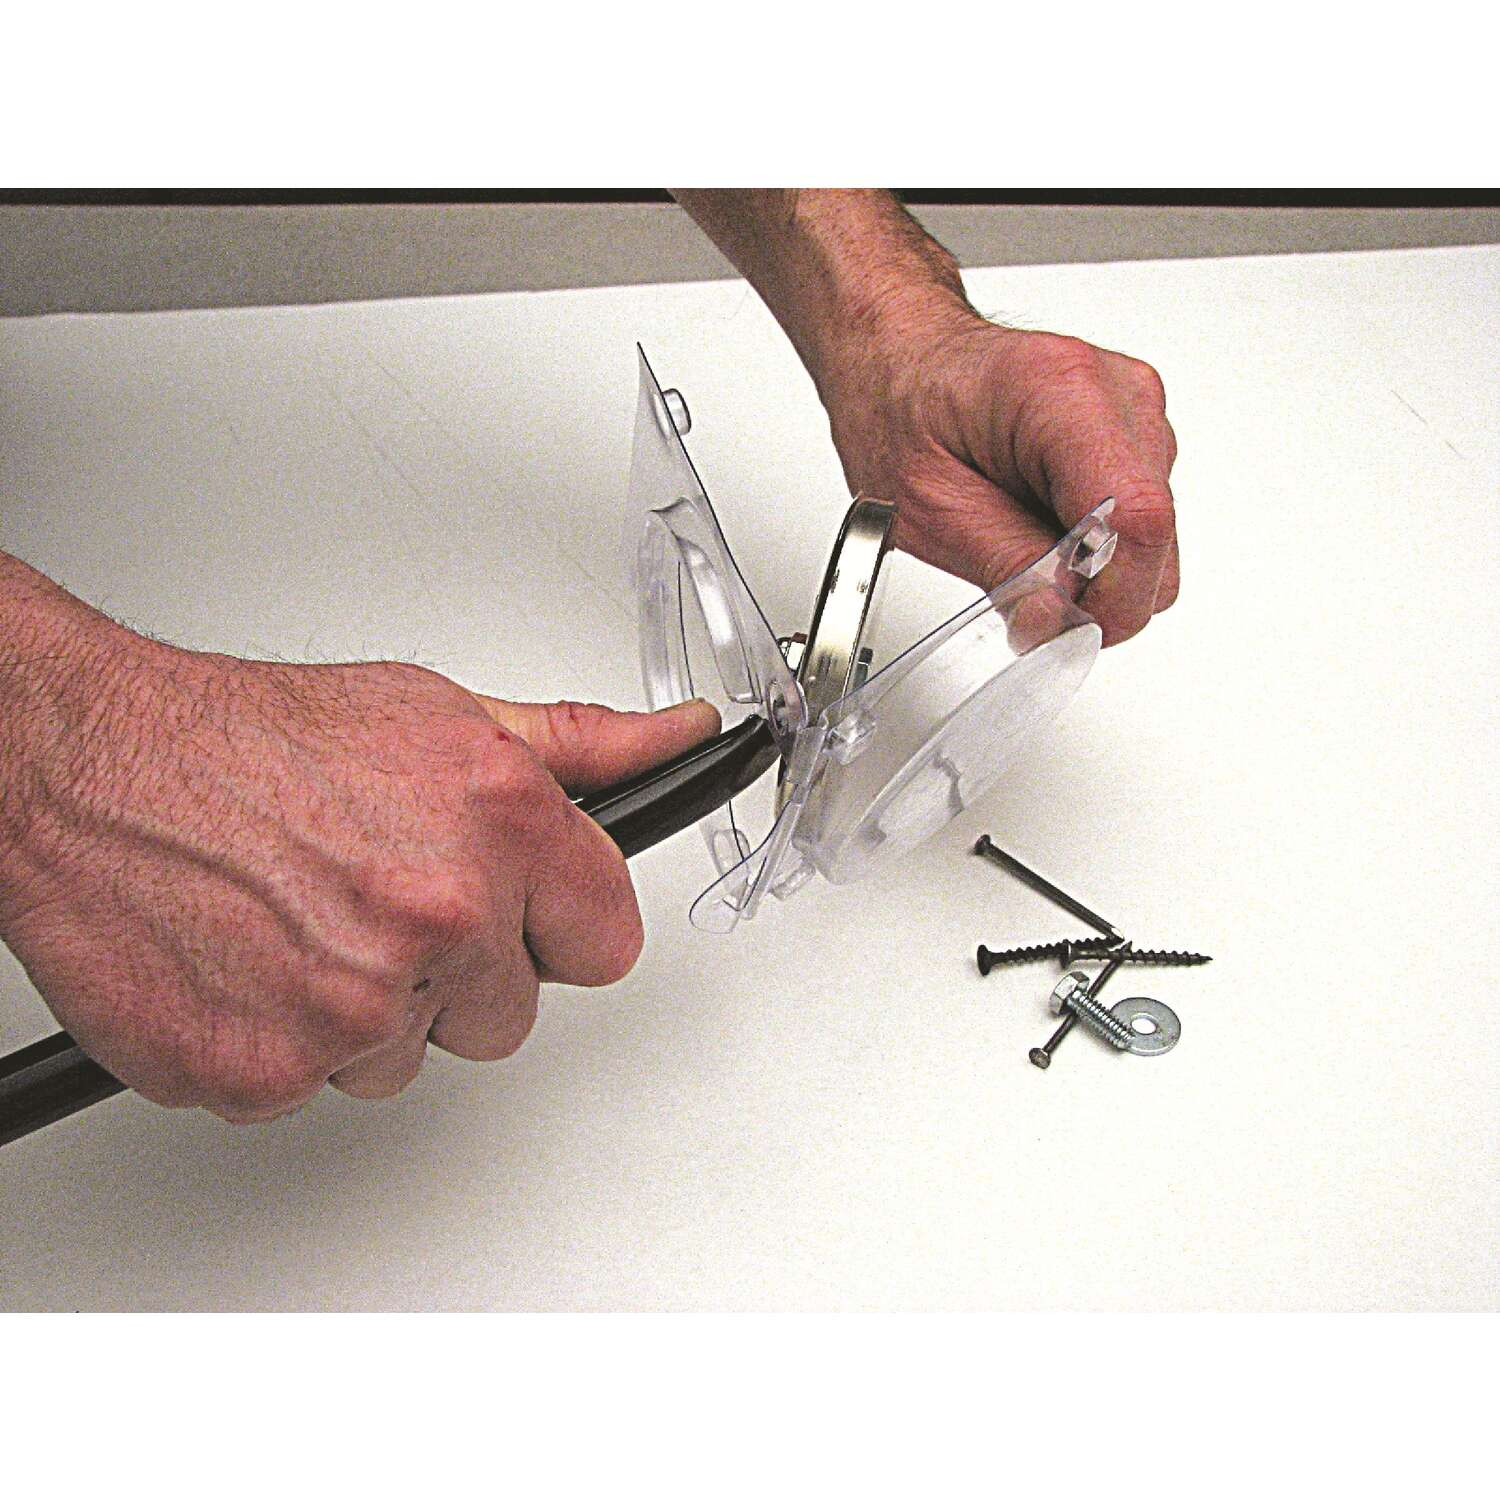 Master Magnetics  Magnetic Pick-Up PalTM  37 in. Magnetic Pick-Up Tool  Ceramic  65 lb. Magnetic Pic